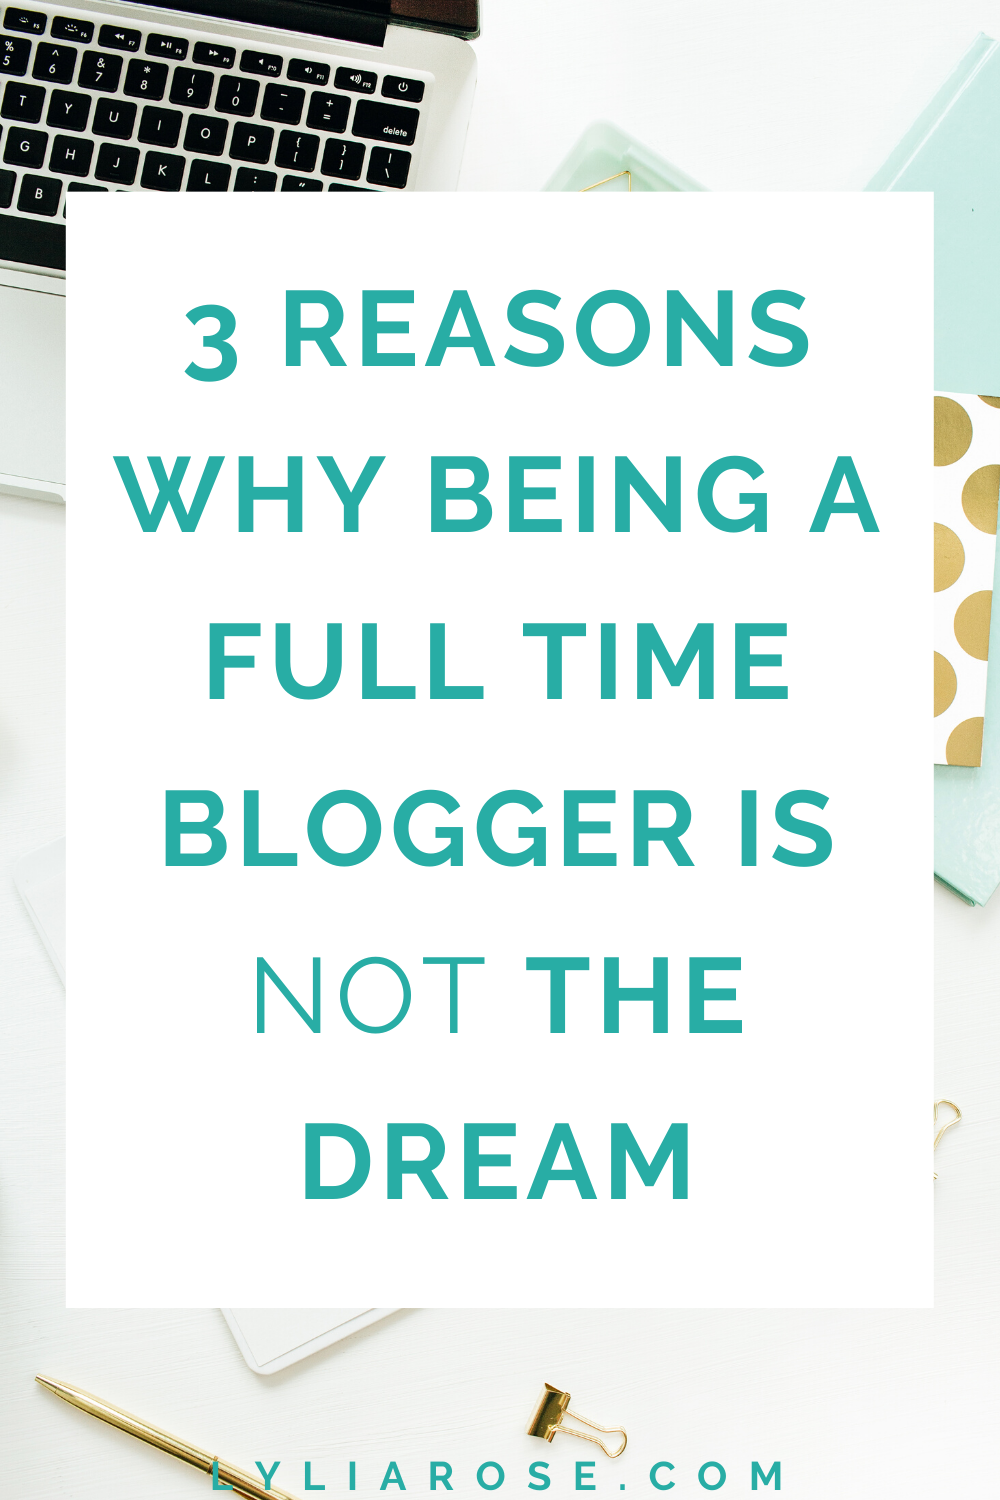 3 reasons why being a full time blogger is not the dream